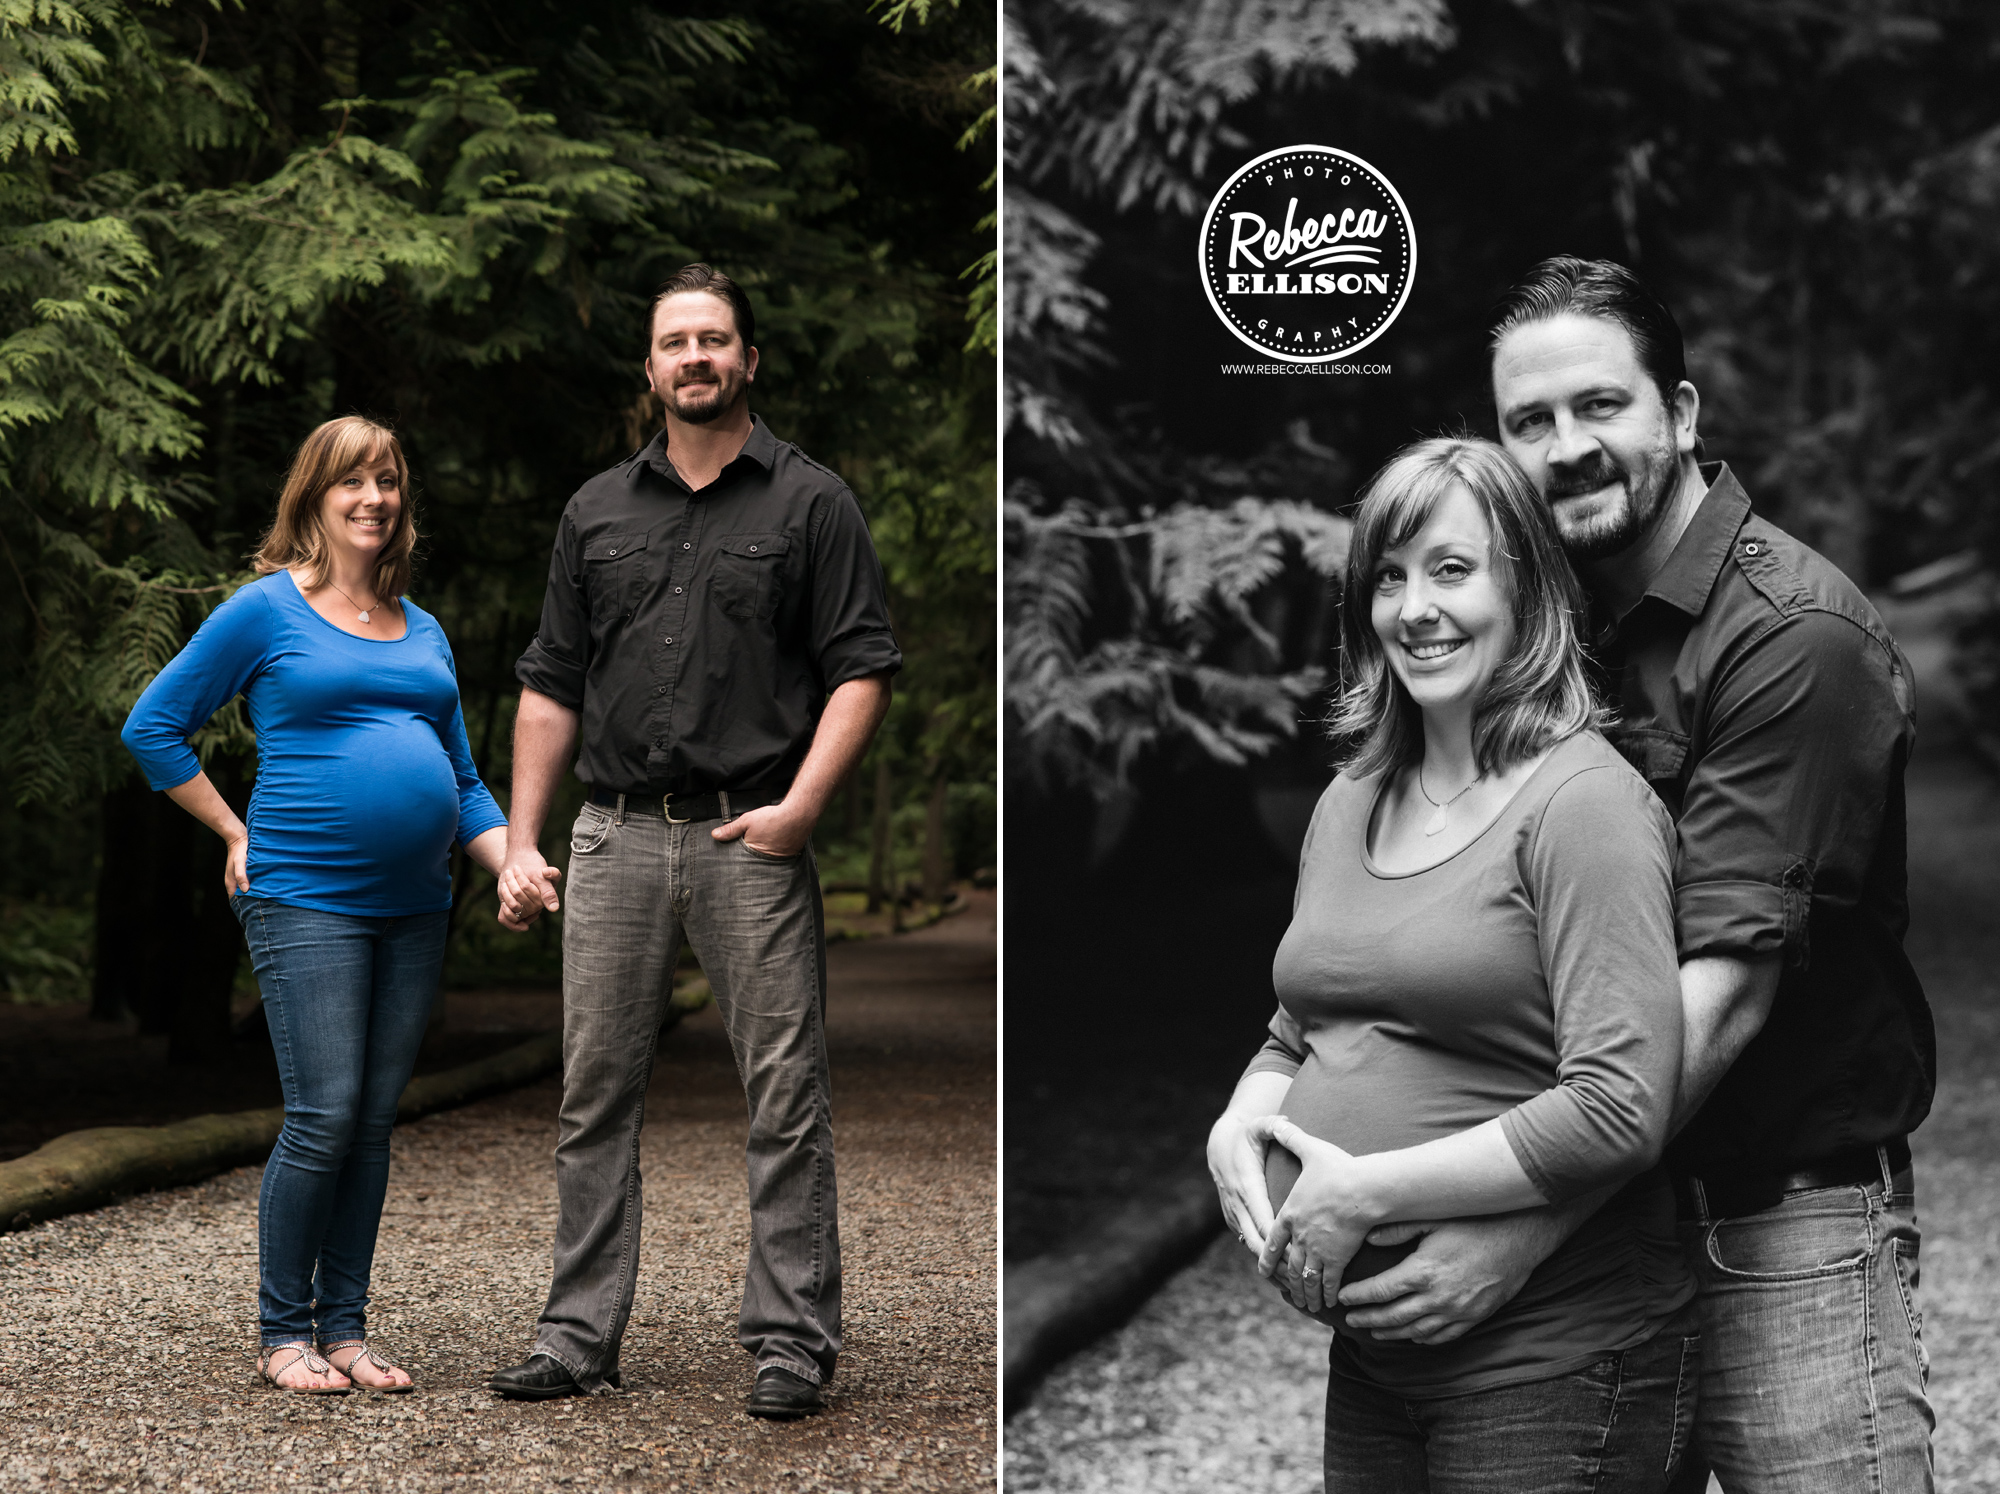 Outdoor maternity photos in Hamlin Park photographed by Shoreline maternity photgrapher Rebecca Ellison